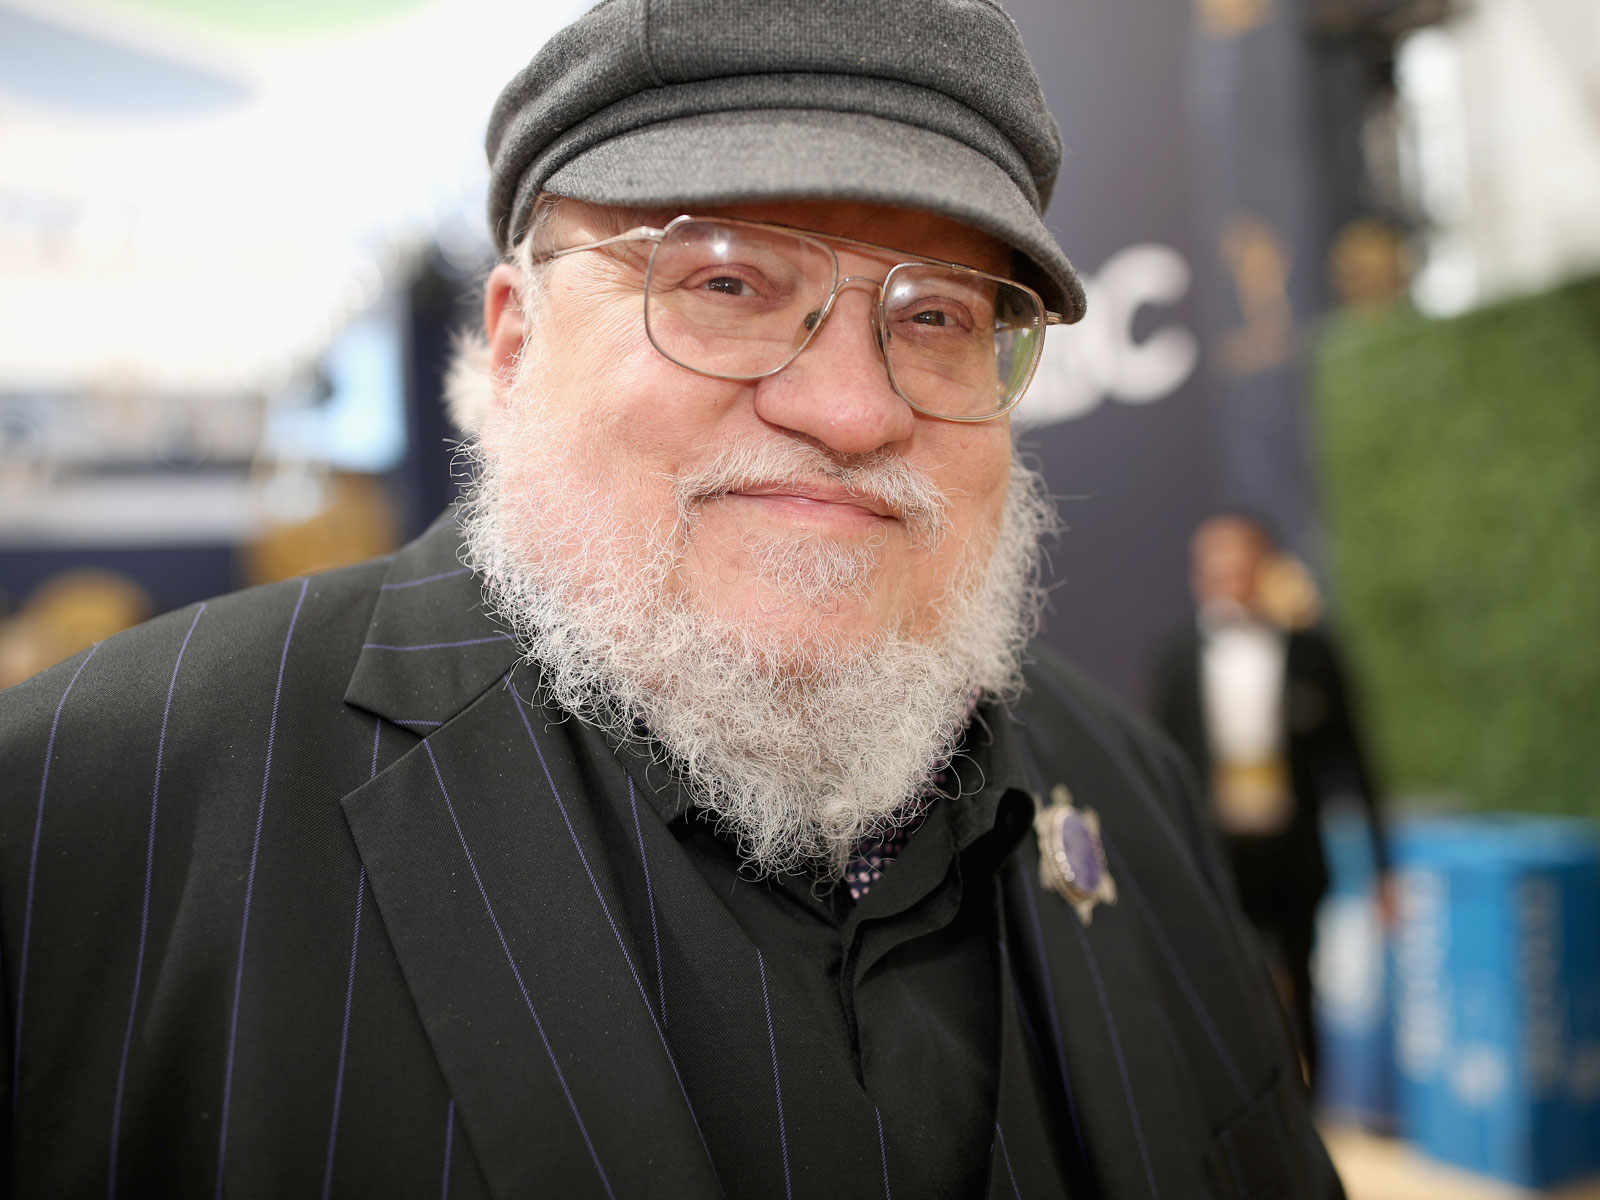 george-rr-martin-nyc-pizza-FT-BLOG1218.jpg